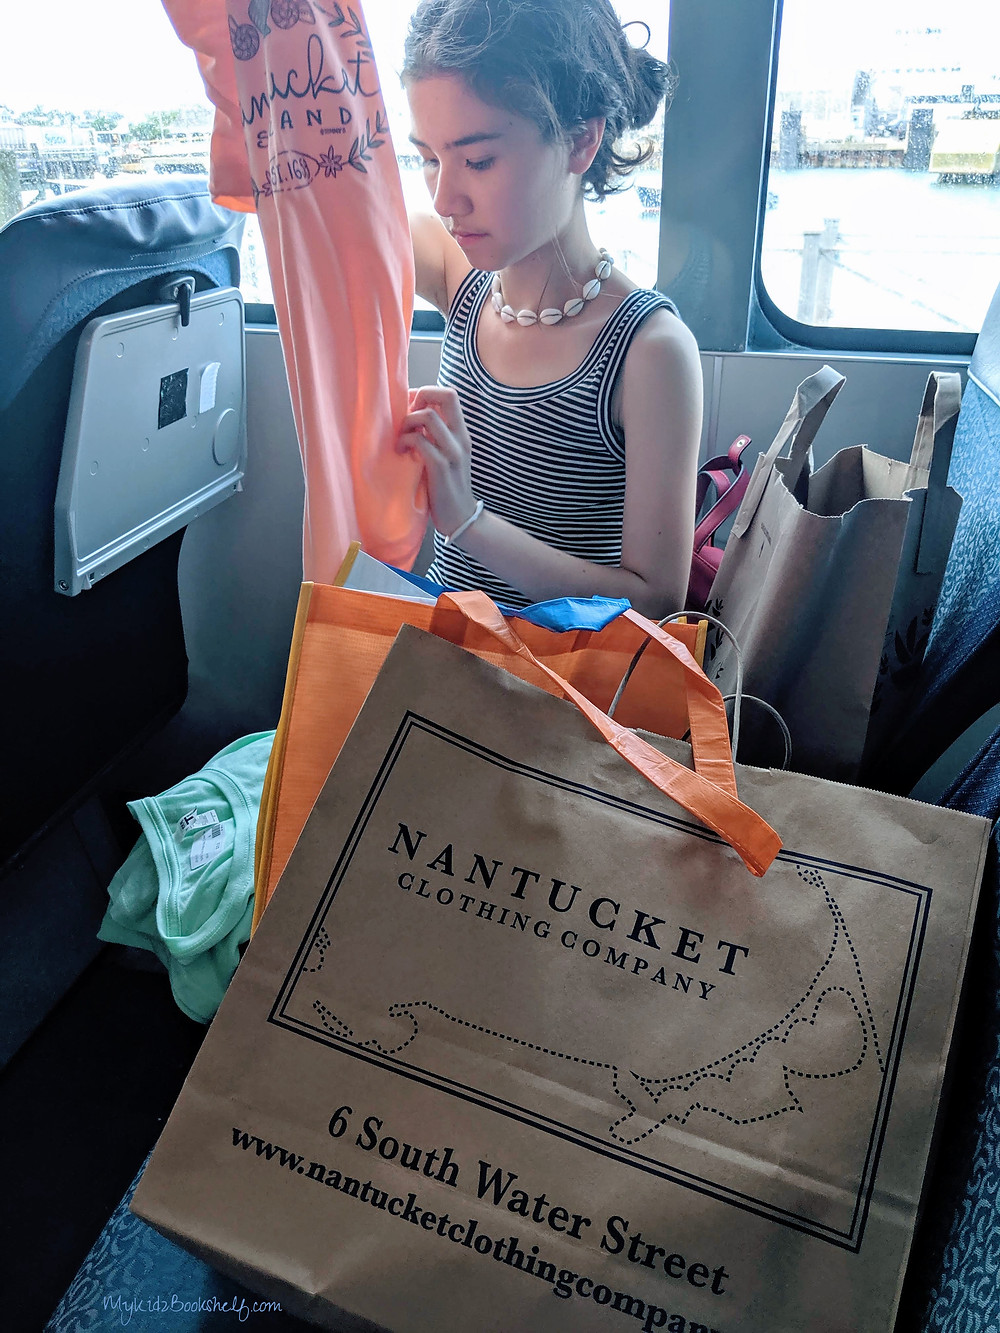 Checking-out-our-purchases-on-the-ferry-ride-from-Nantucket-to-Marth's-Vineyard